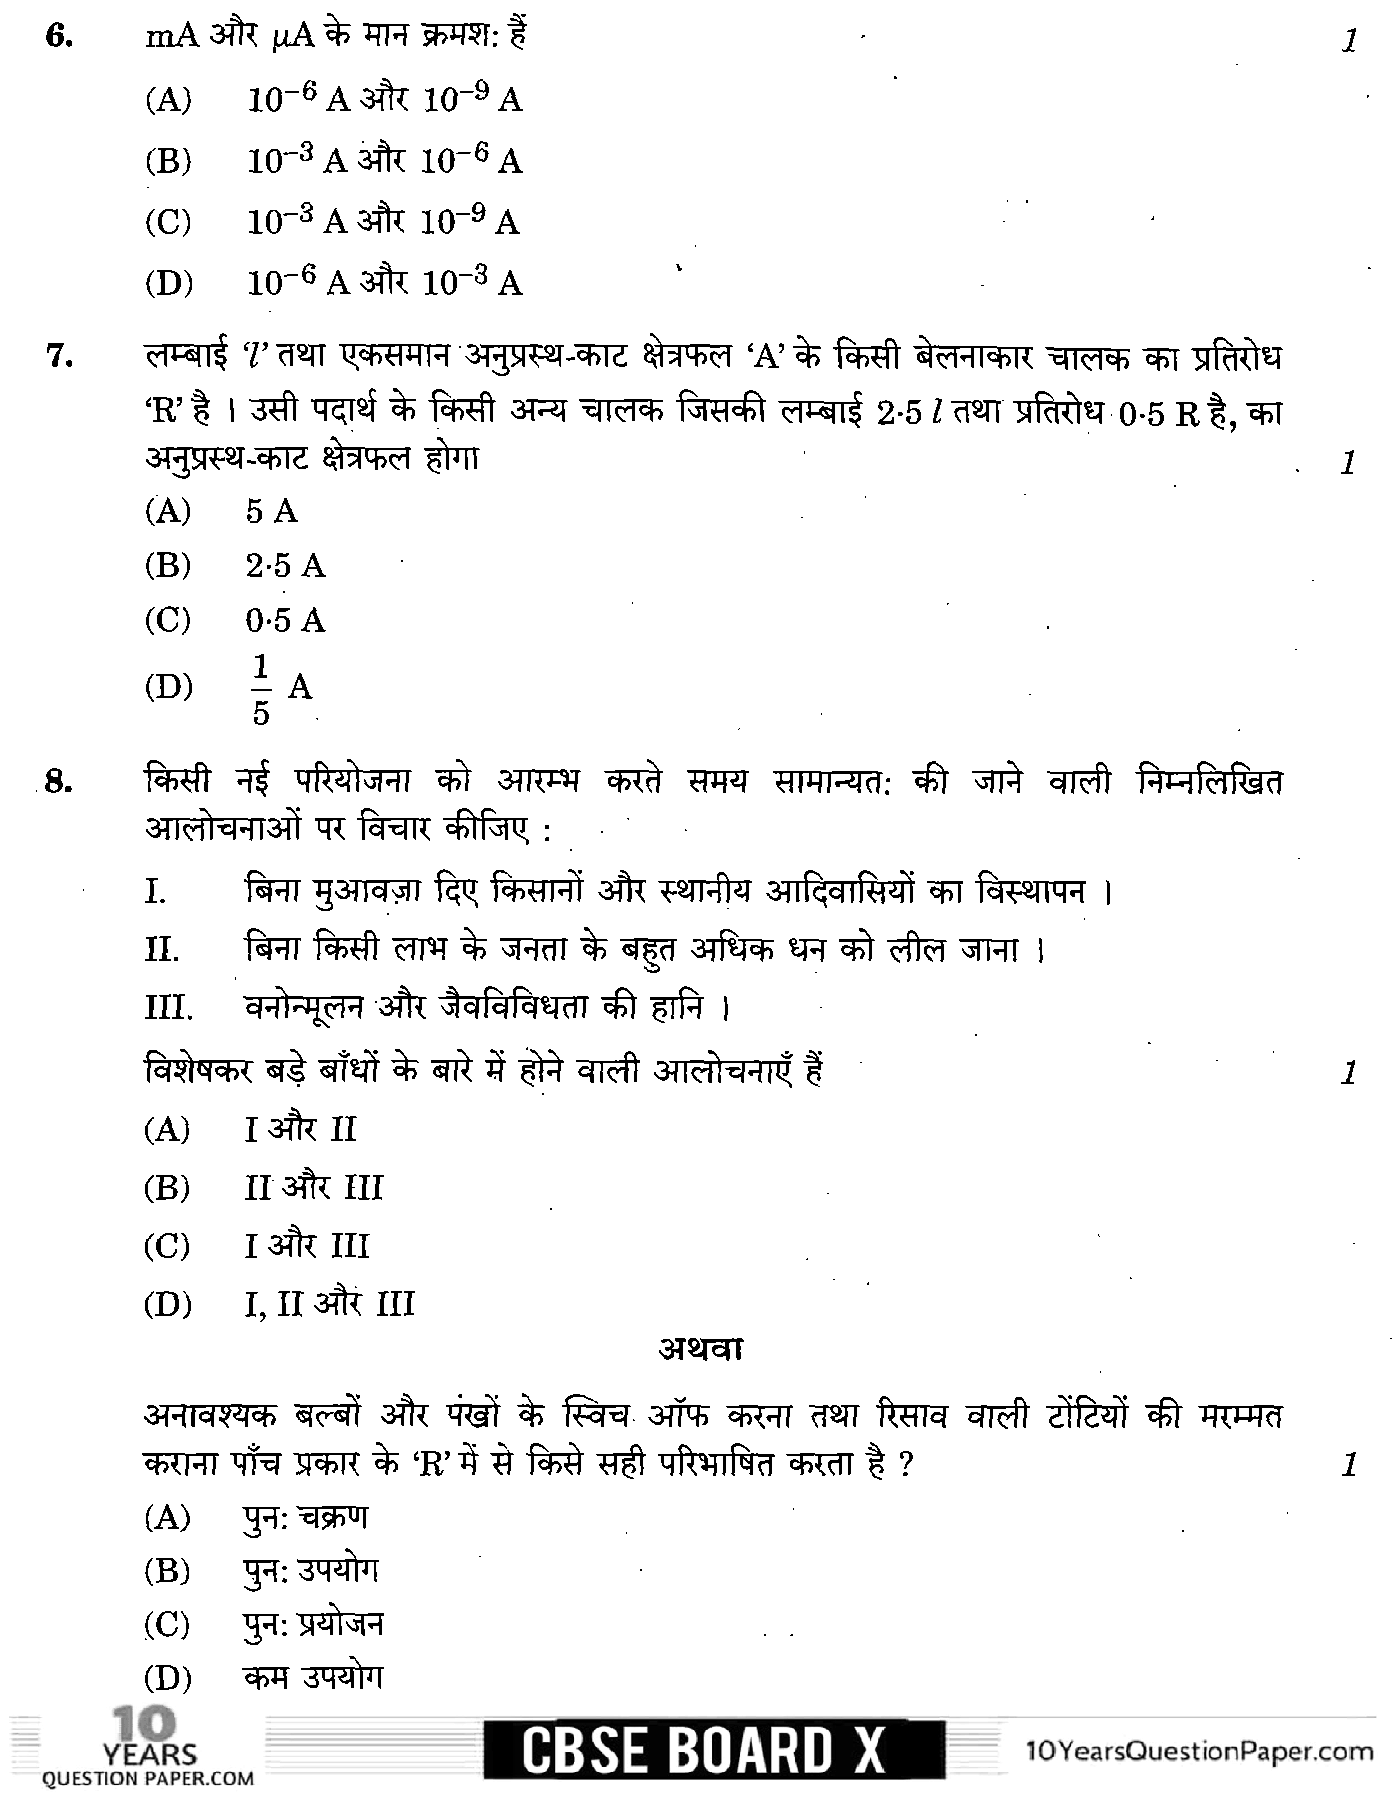 CBSE Class 10 Science 2020 Question Paper